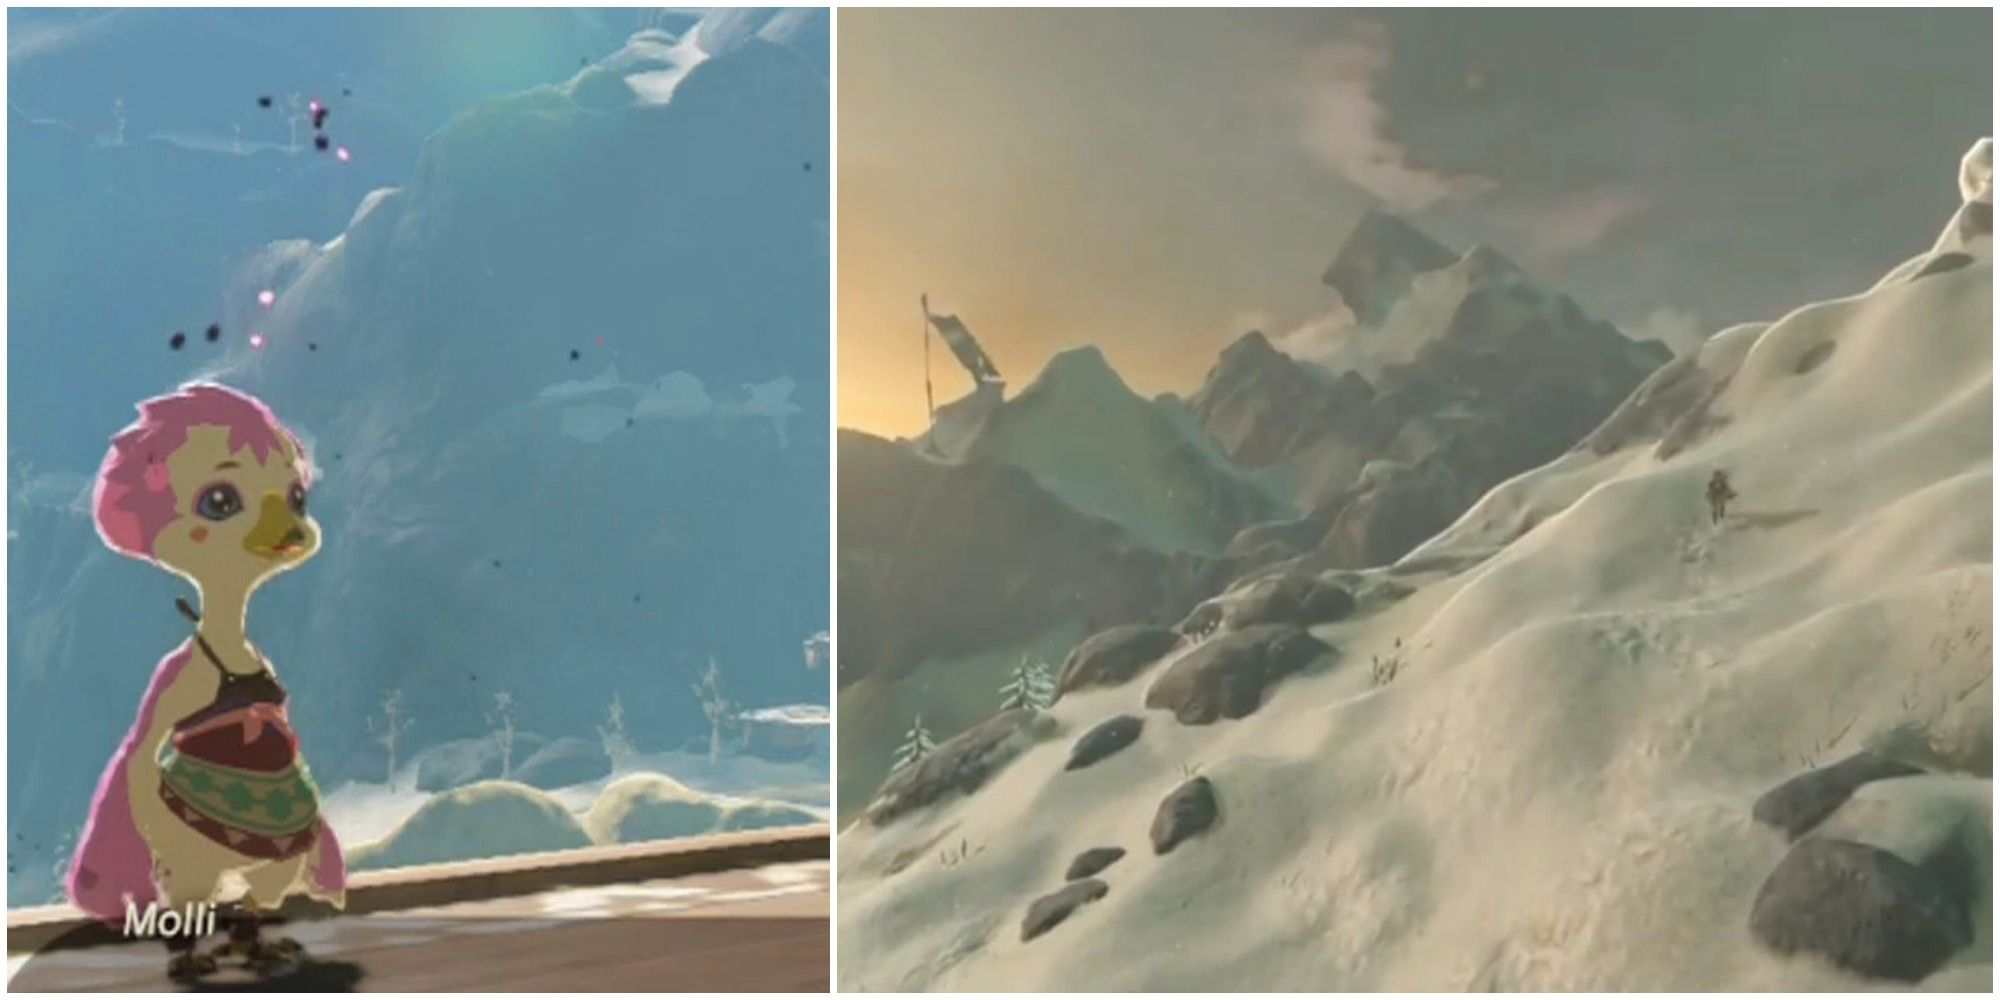 Breath Of The Wild: The Bird in the Mountains Tutorial